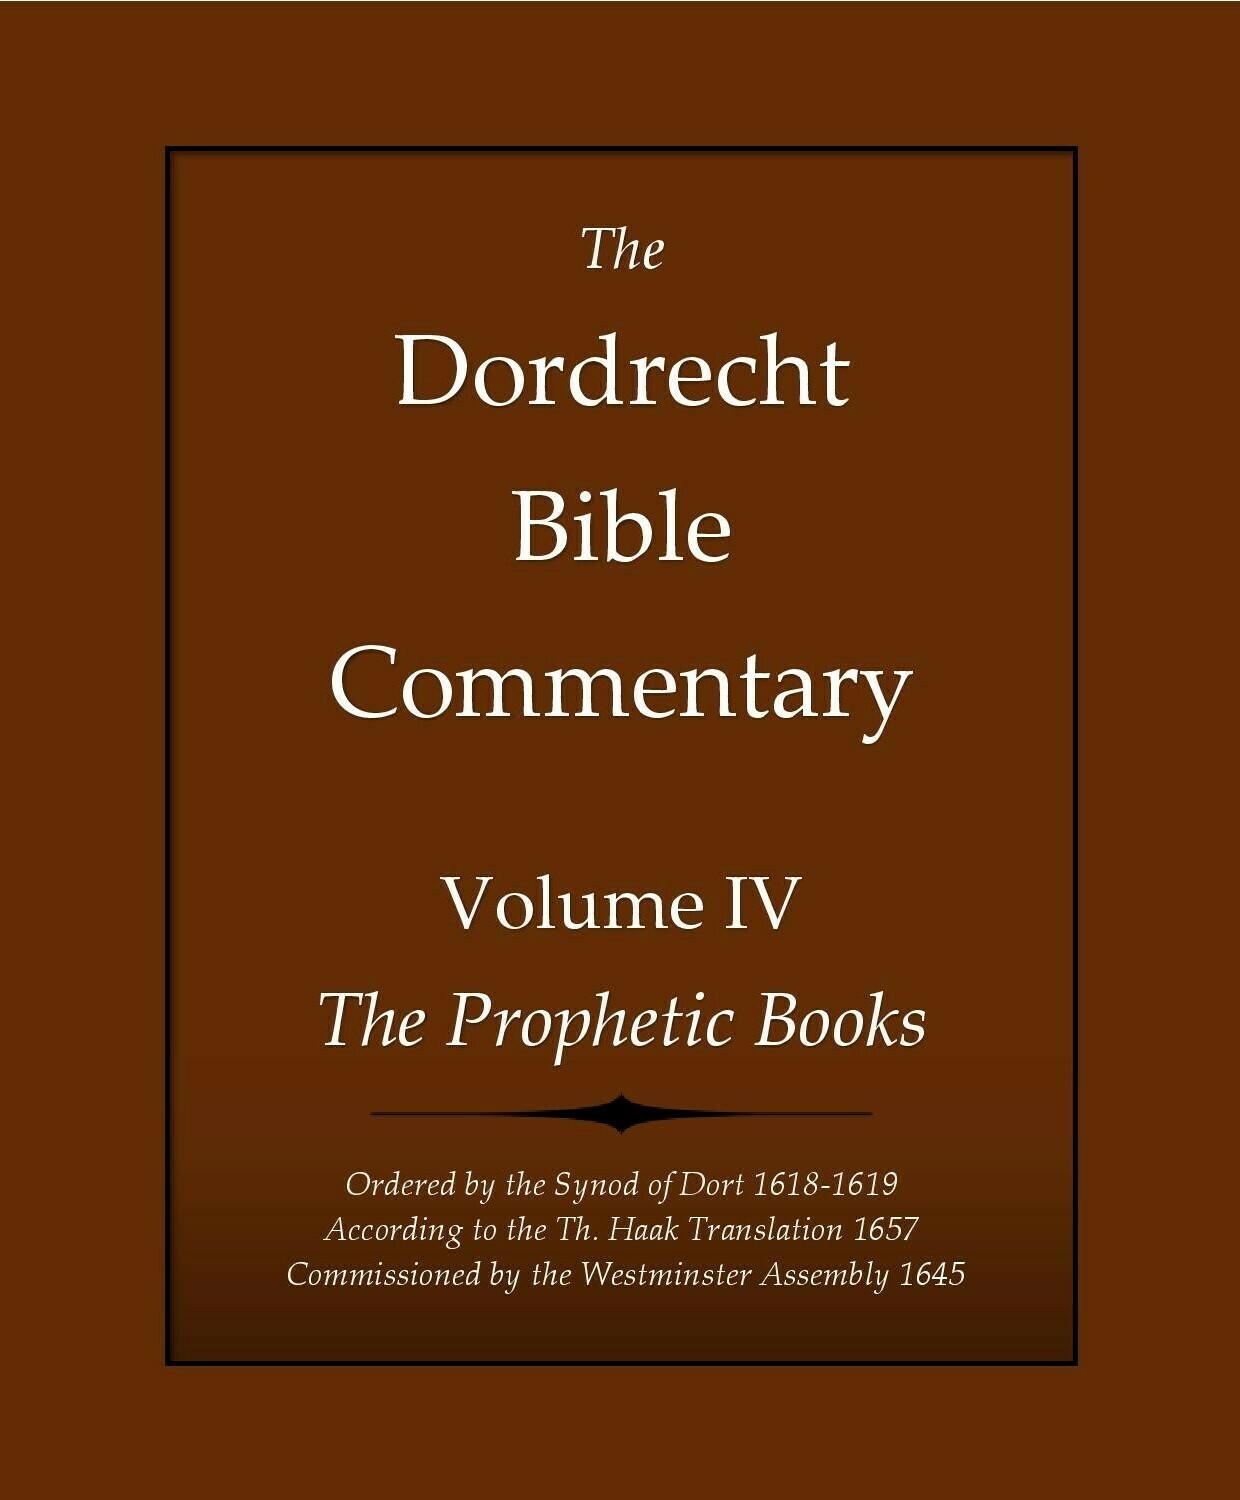 The Dordrecht Bible Commentary: Volume IV: The Prophetic Books (Soft-Cover & E-Book)